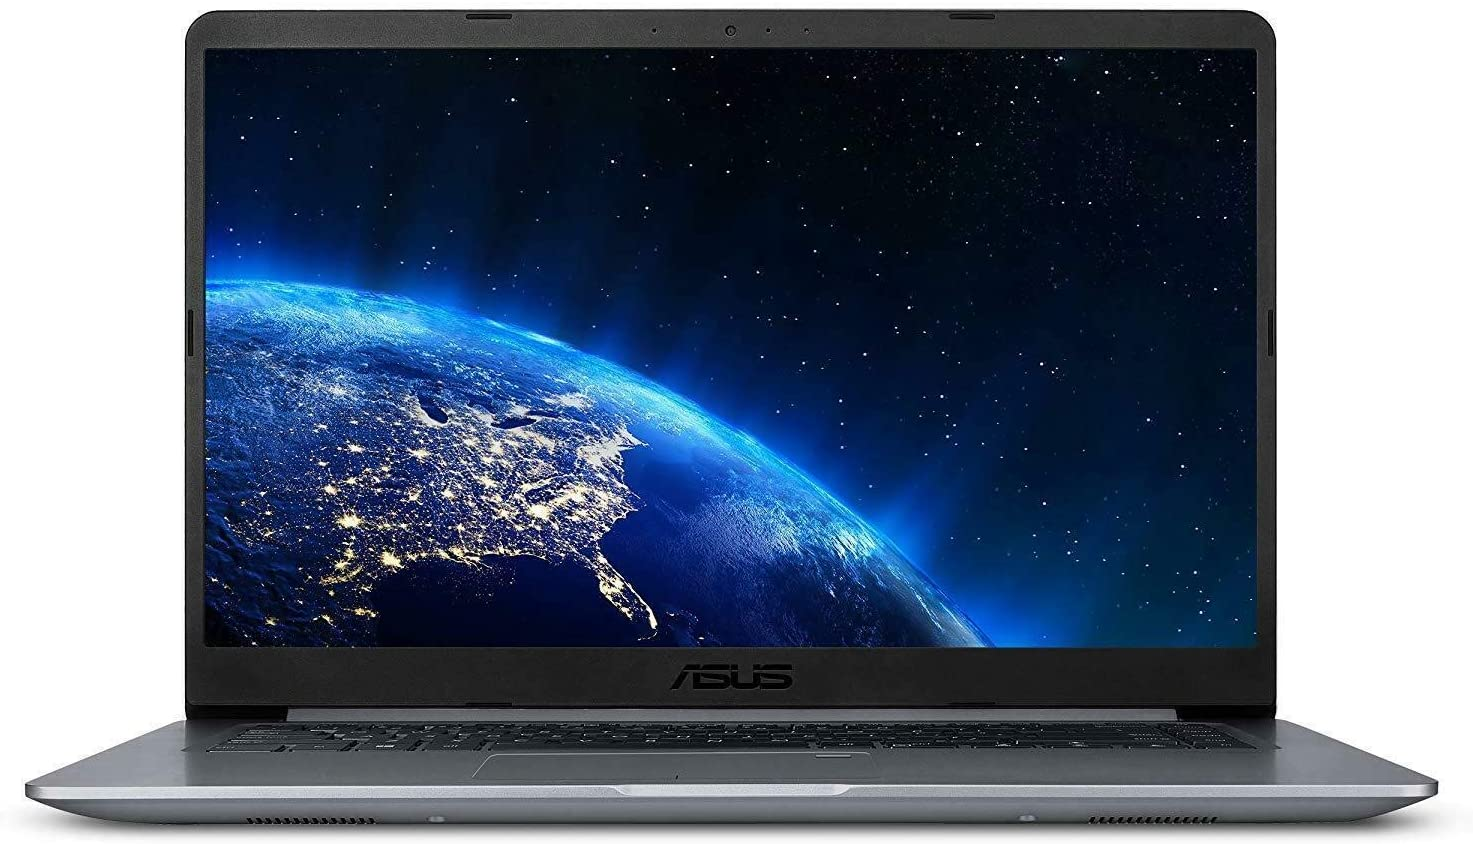 "ASUS VivoBook 15.6"" FHD Anti-Glare Laptop, Intel Quad Core A12-9720P 2.7GHz up to 3.6GHz, 4GB DDR4, 128GB SSD, AMD Radeon R7, USB Type-C, Bluetooth, Fingerprint Reader, Webcam, WiFi, HDMI, Windows 10"